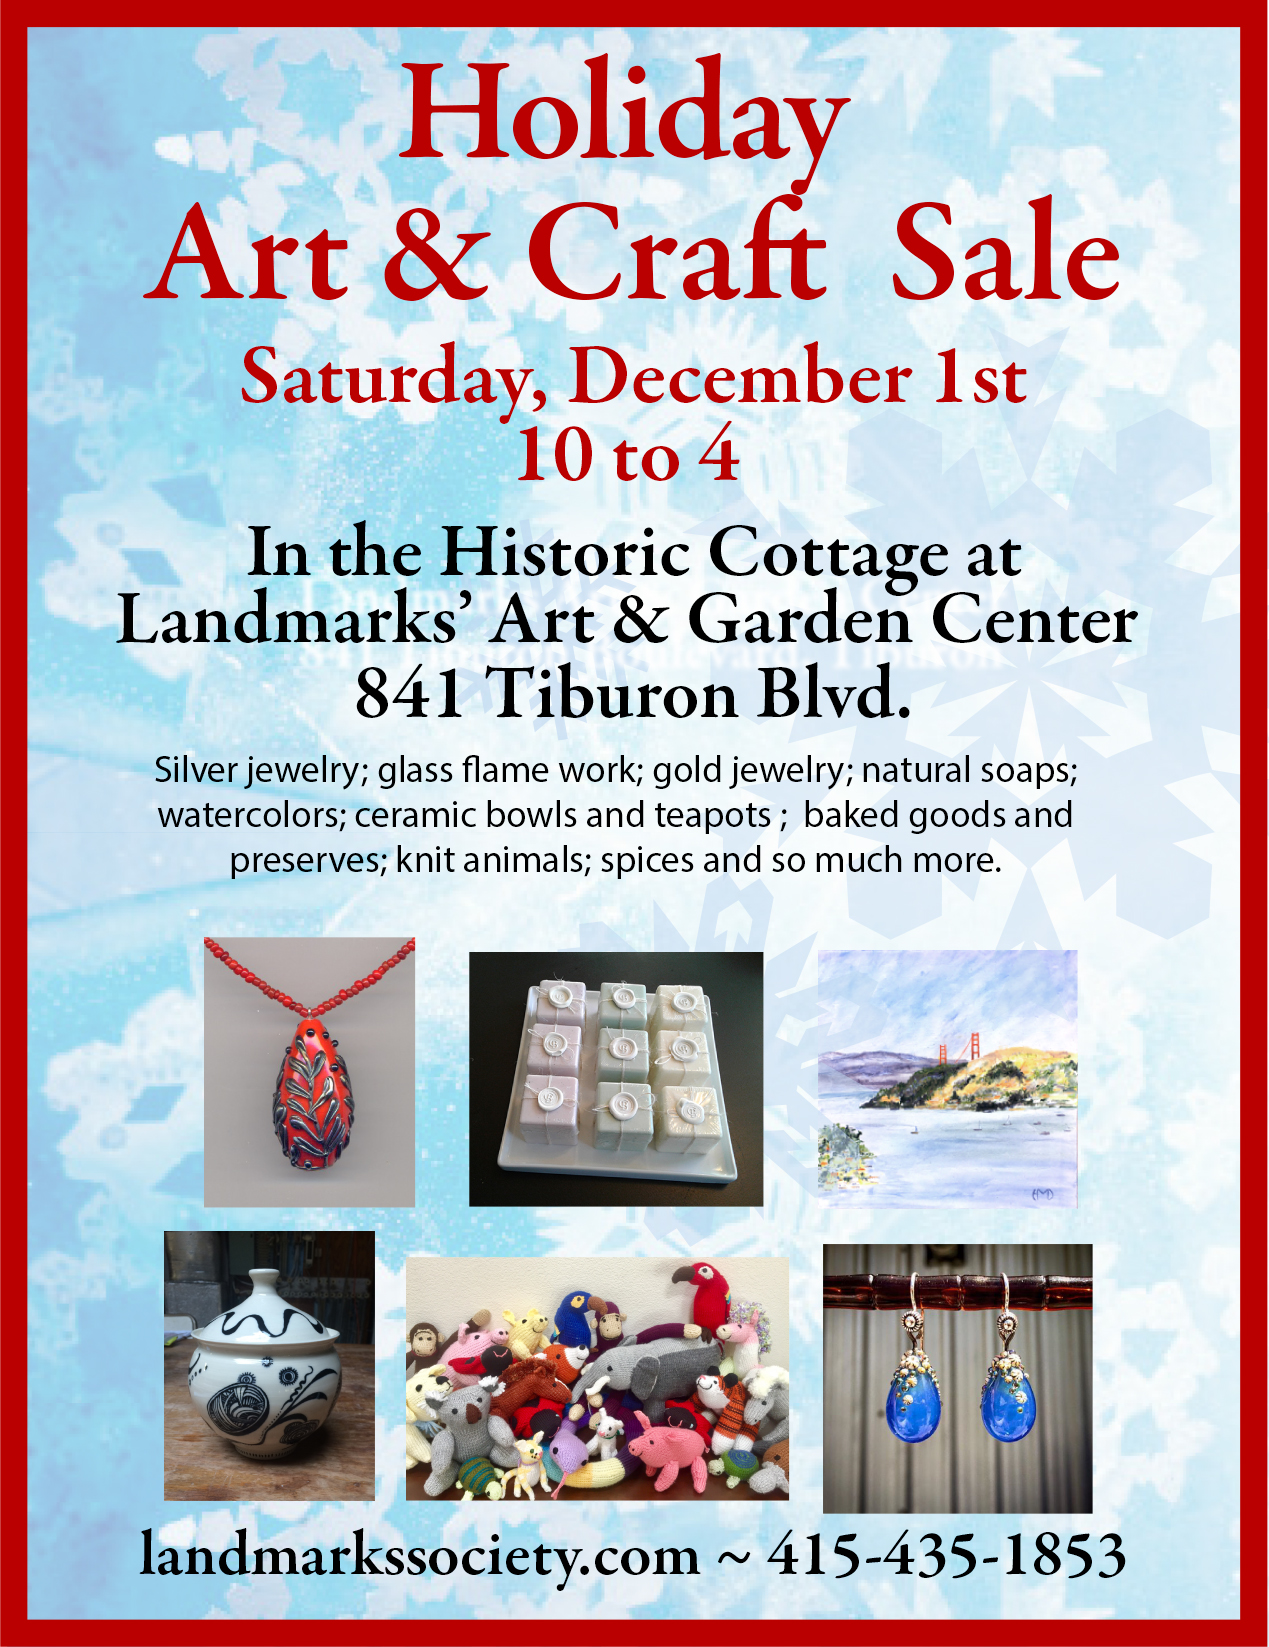 Holiday Art Craft Sale Belvedere Tiburon Landmarks Society